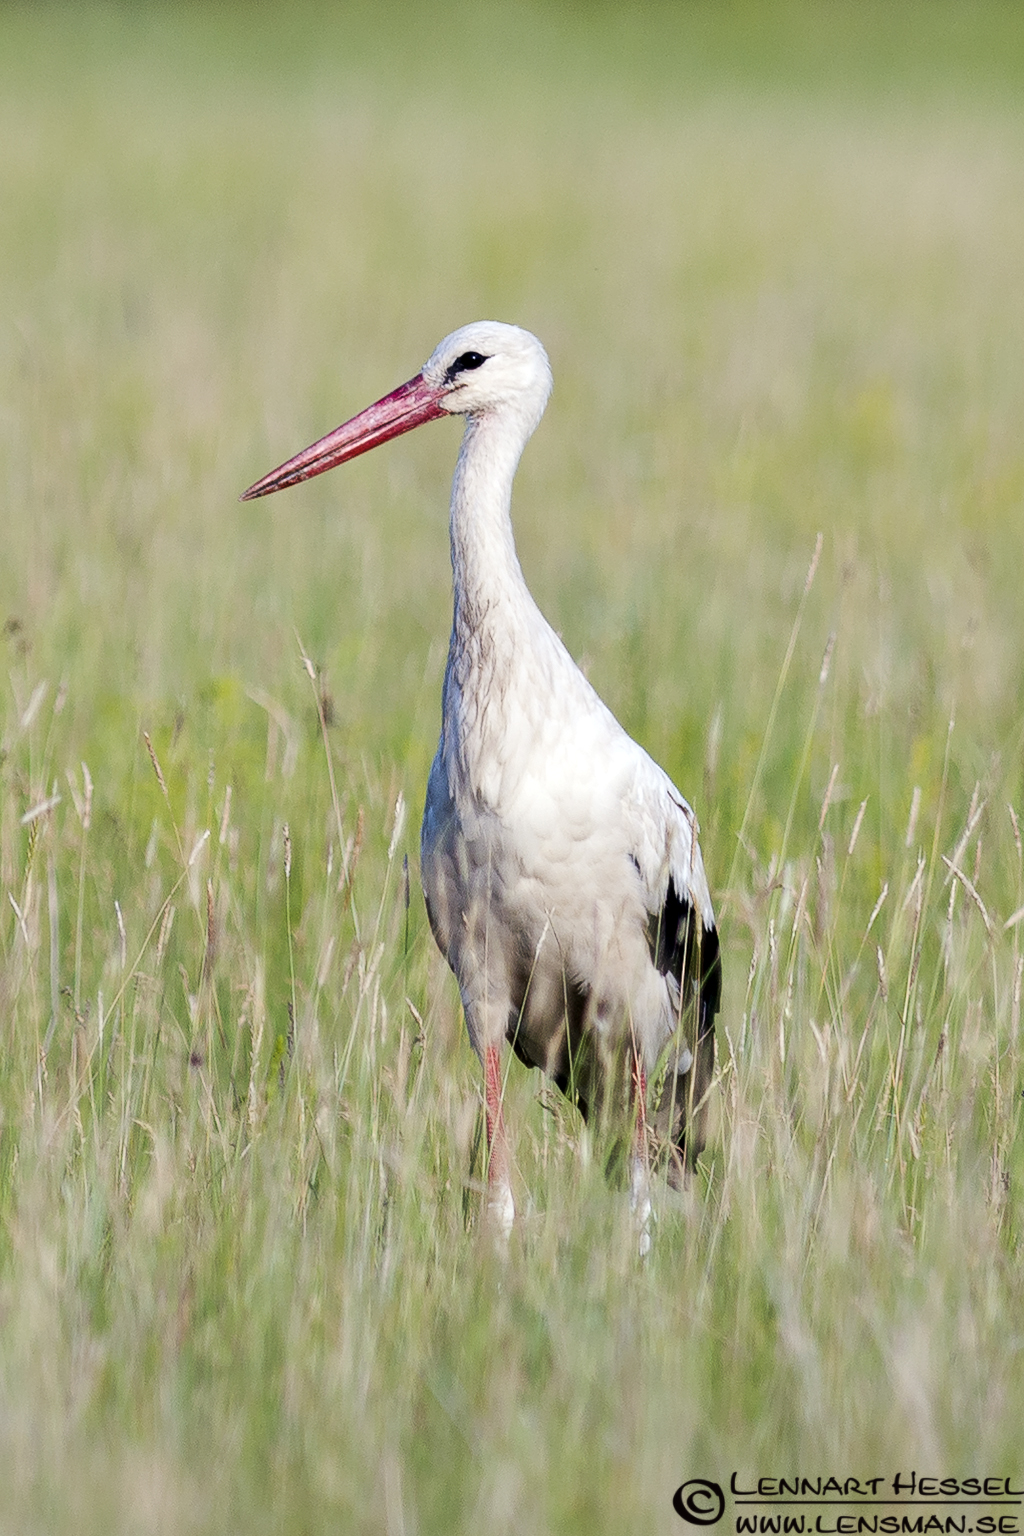 White Stork in Hungary